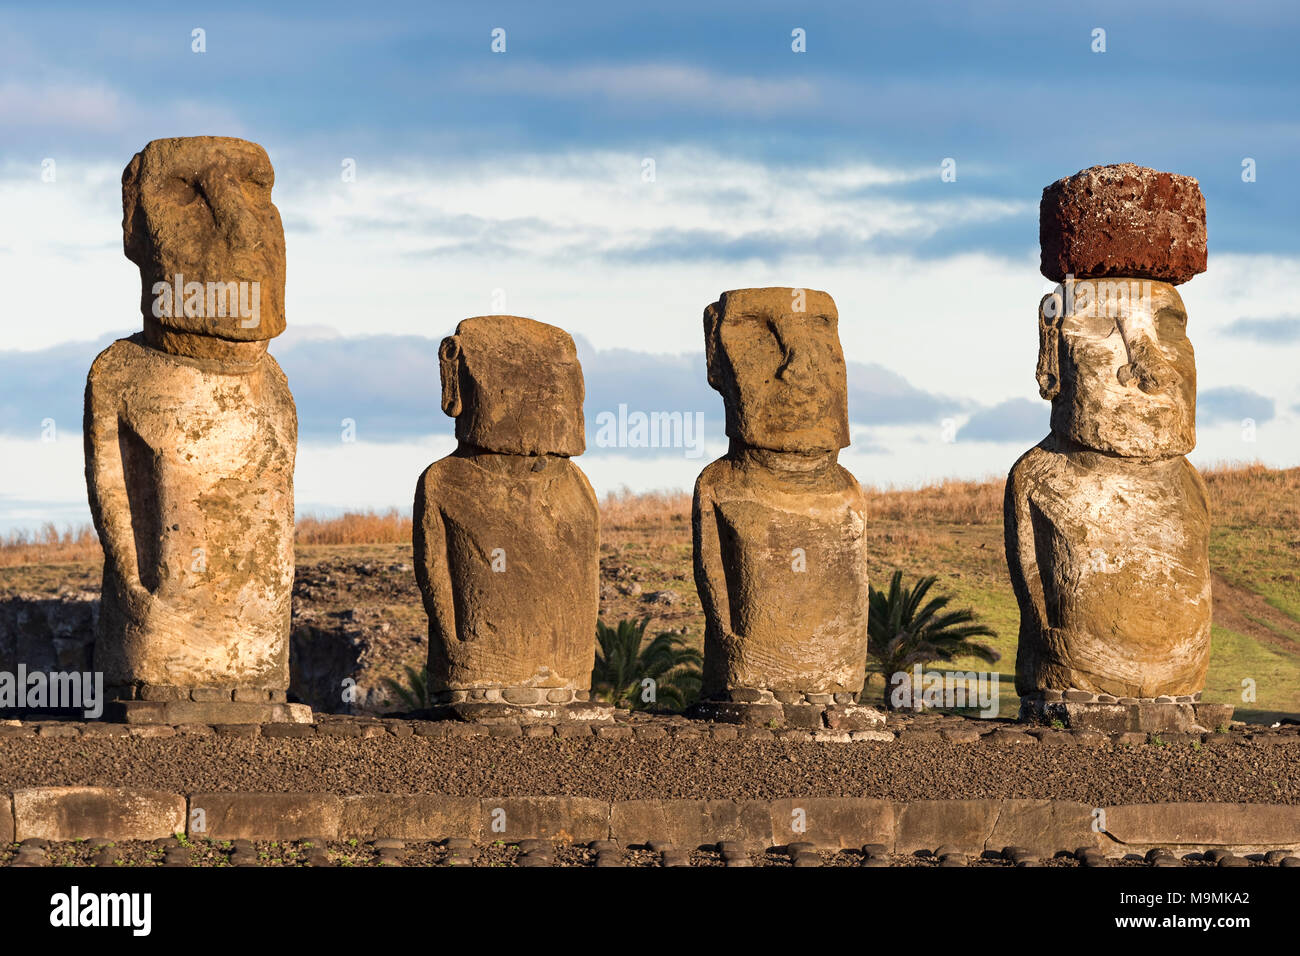 Stone figures, group of Moais, Ahu Tongariki, Easter Island, Chile - Stock Image